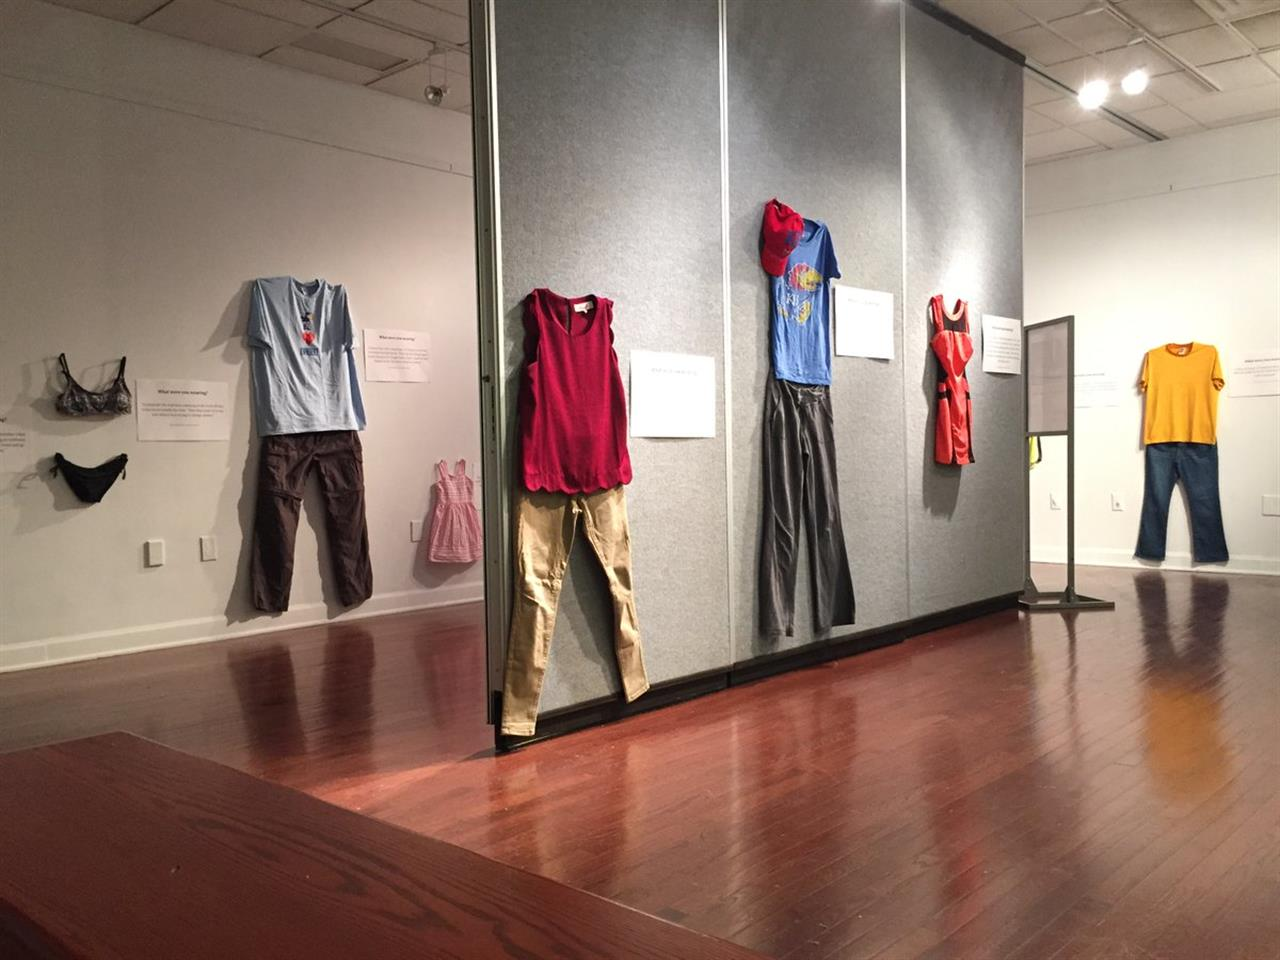 Whatwereyouwearing Exhibit